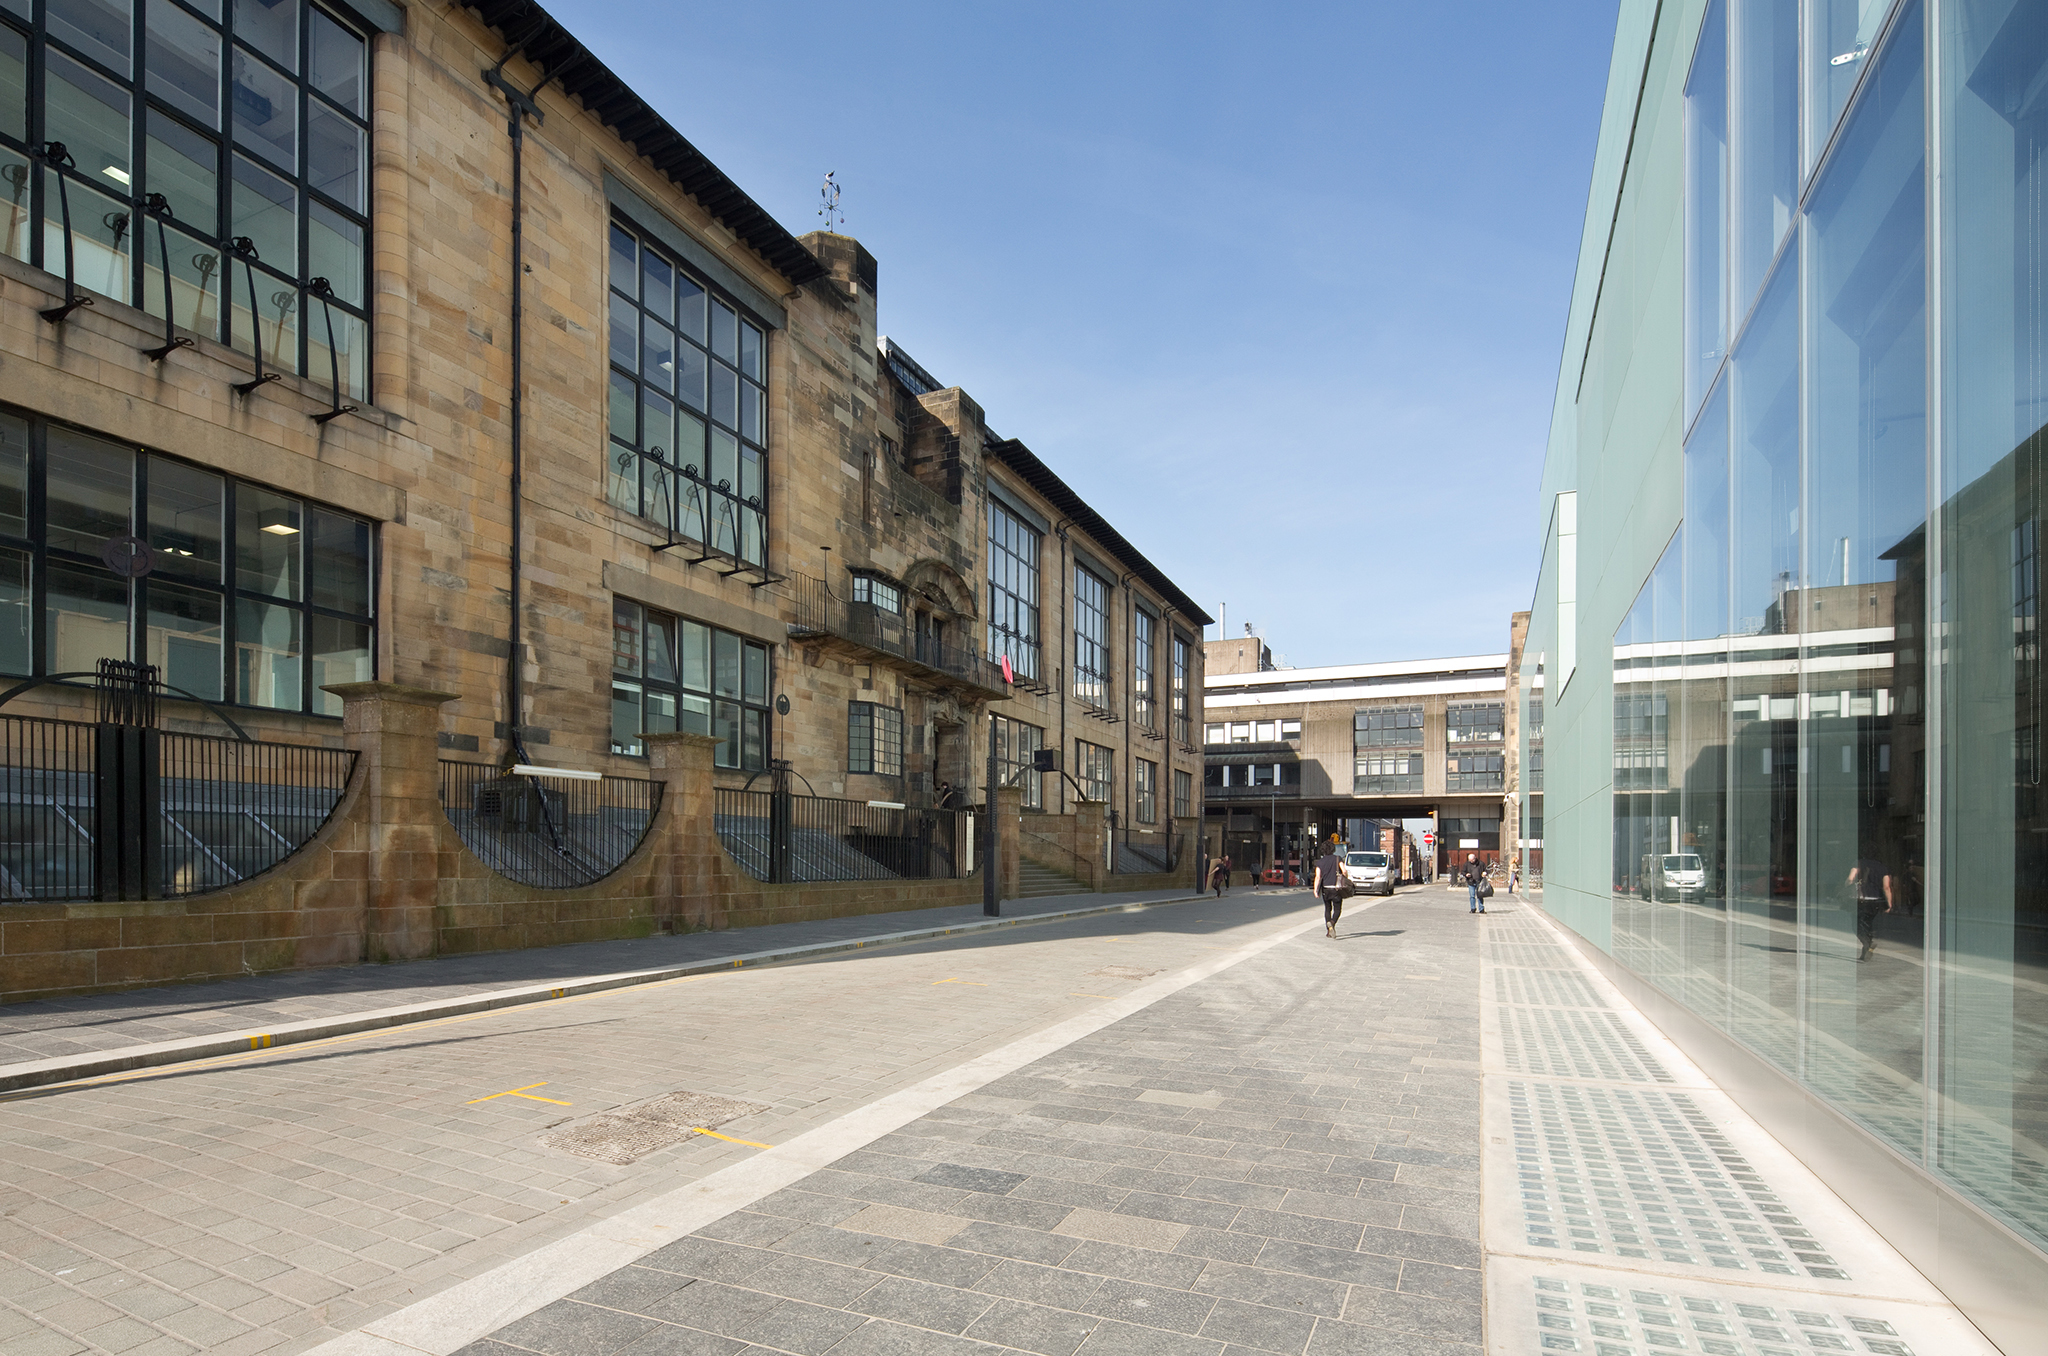 Glasgow School of Art, Galleries, Attractions, Free, Glasgow